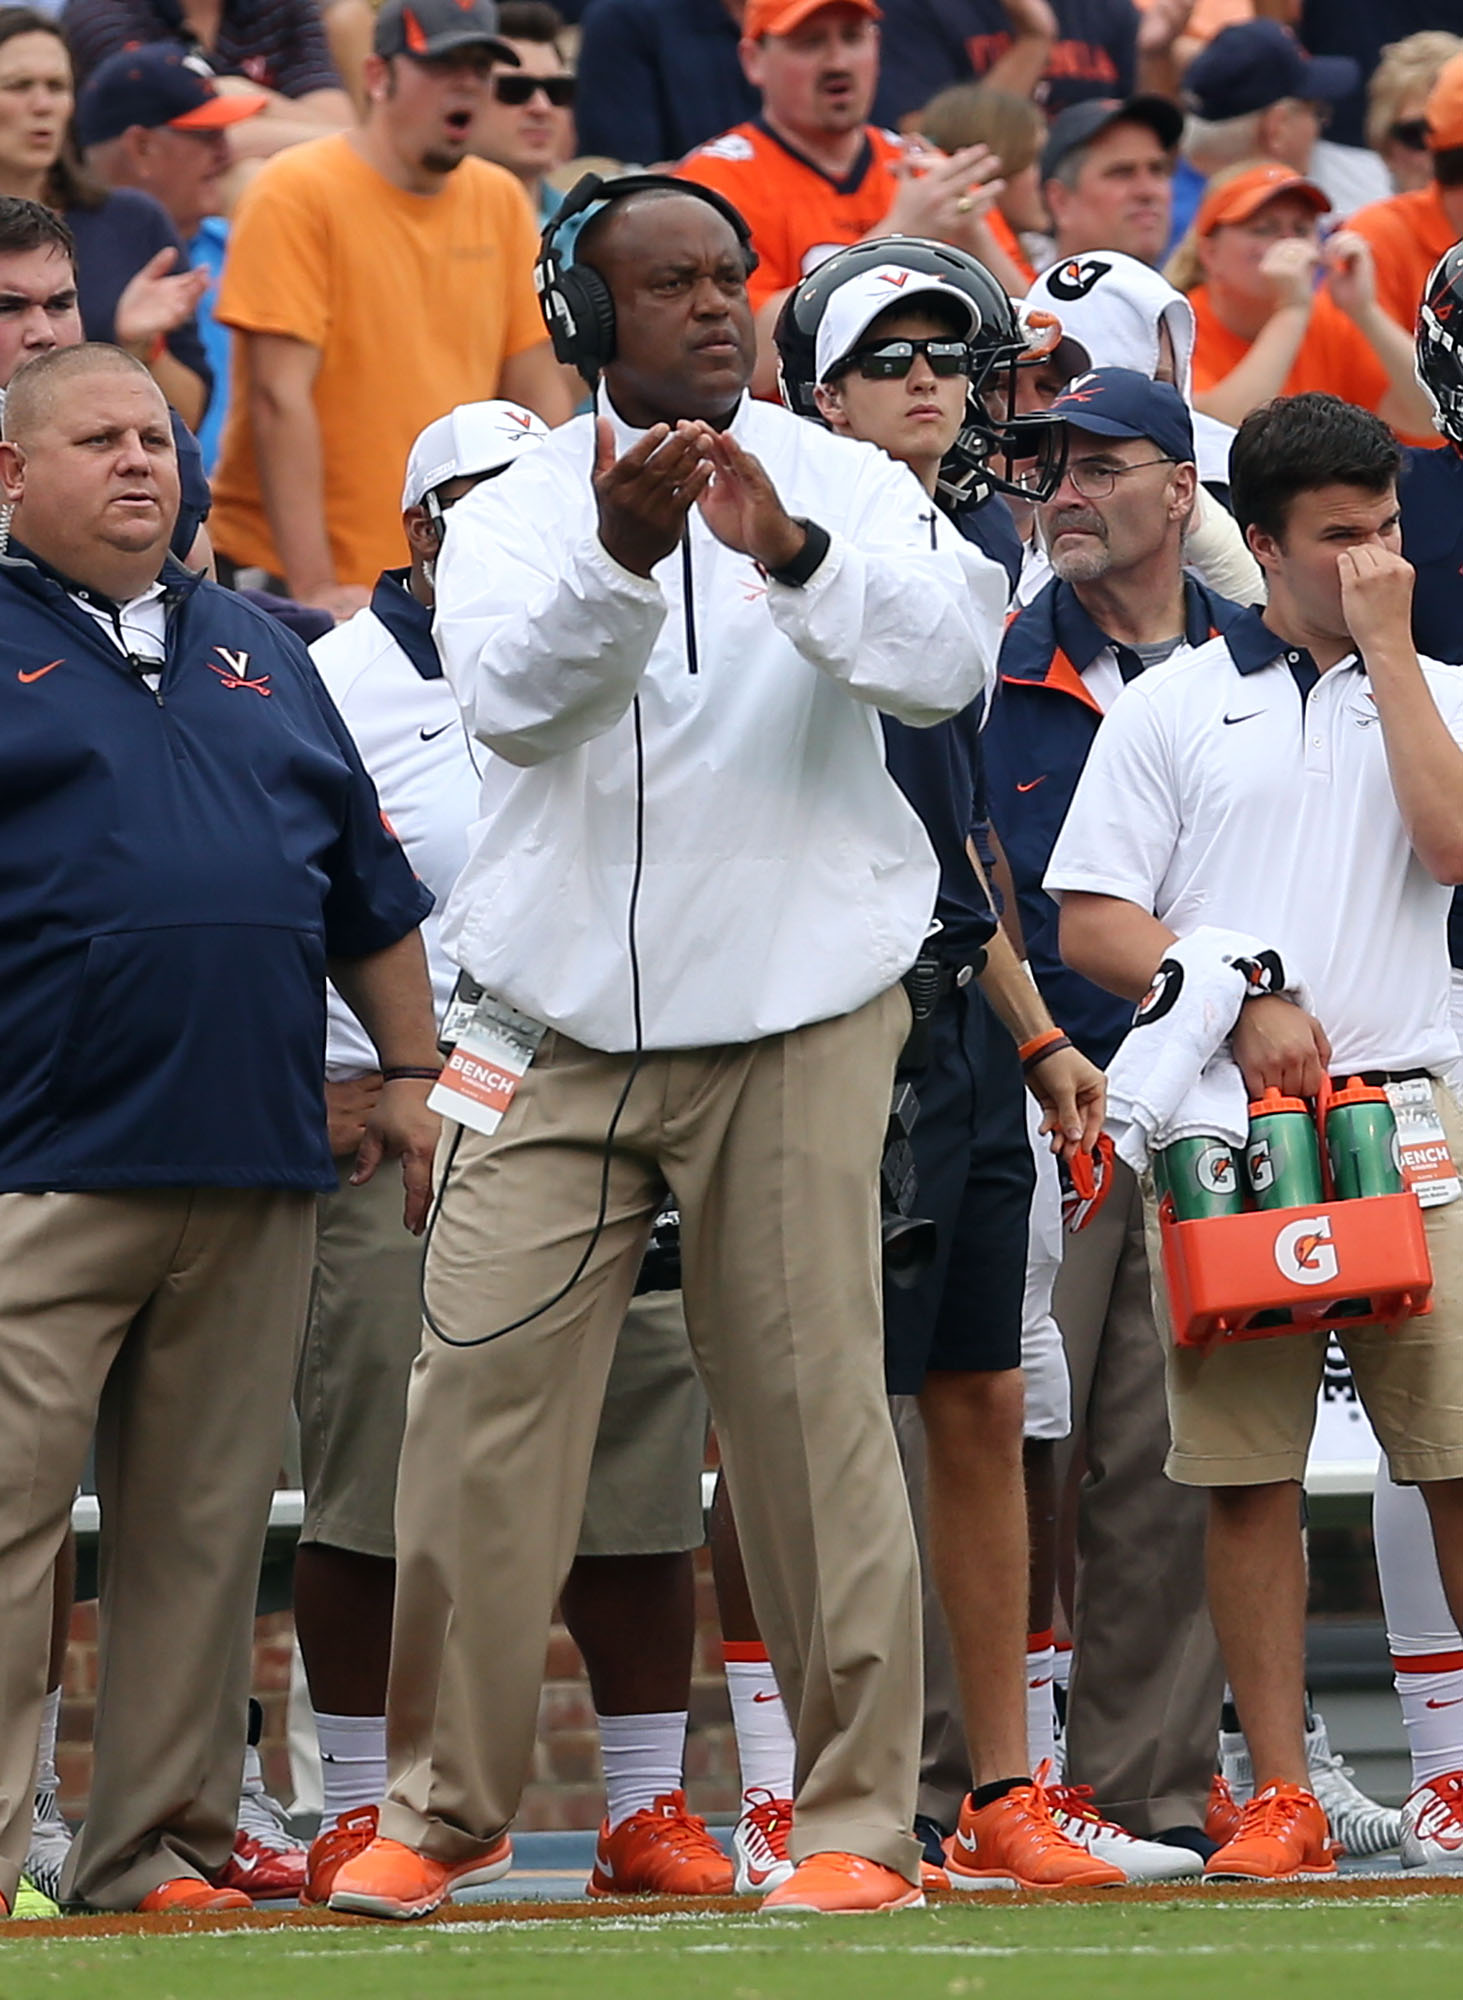 Virginia head coach Mike London reacts to a play during an NCAA college football game against Notre Dame, Saturday, Sept. 12, 2015, in Charlottesville, Va. (AP Photo/Andrew Shurtleff)